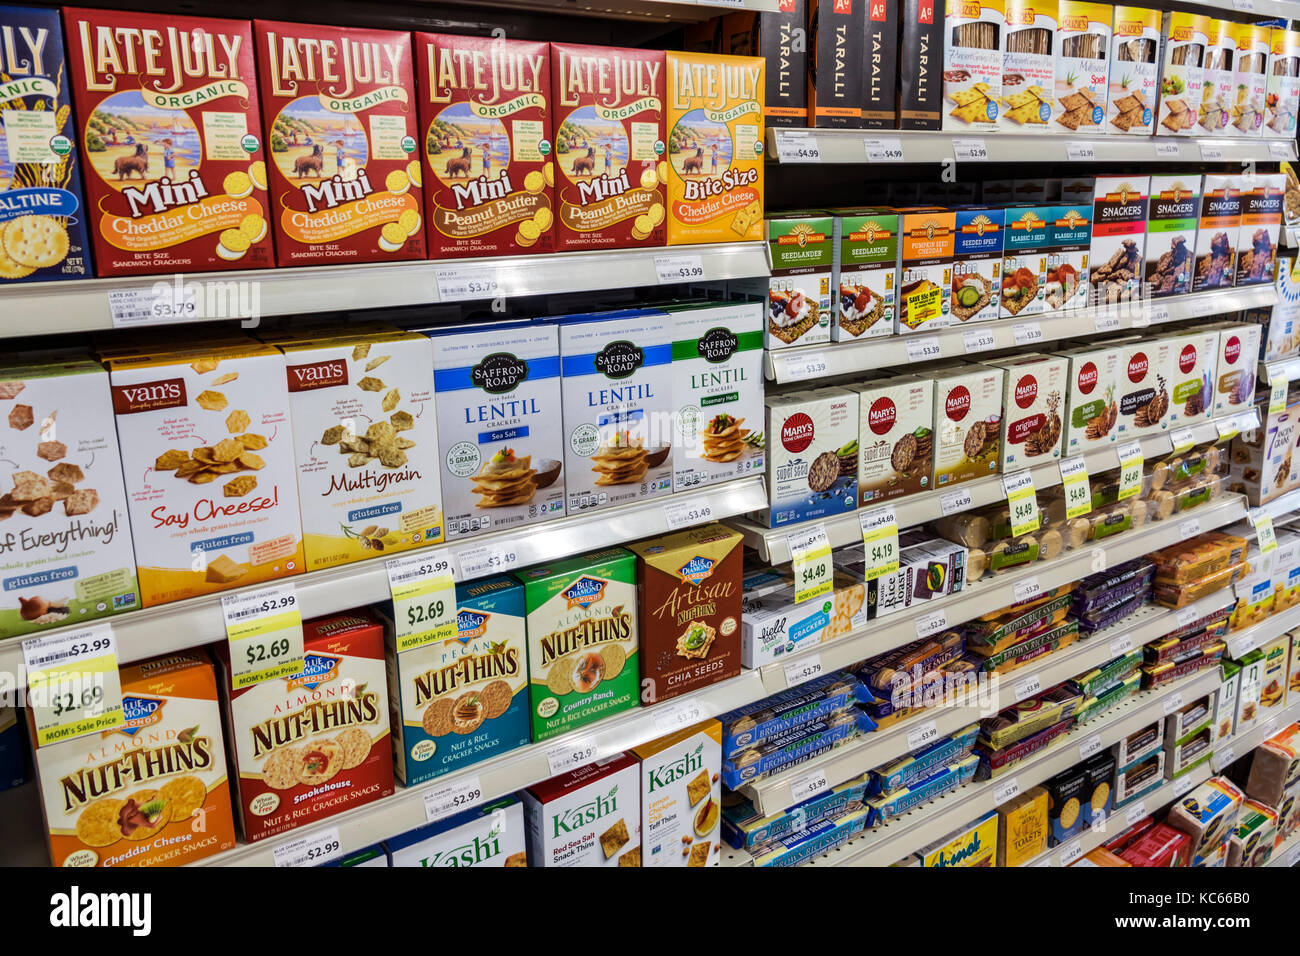 Washington DC District of Columbia MOM's Organic Market grocery store supermarket shopping display shelves crackers - Stock Image